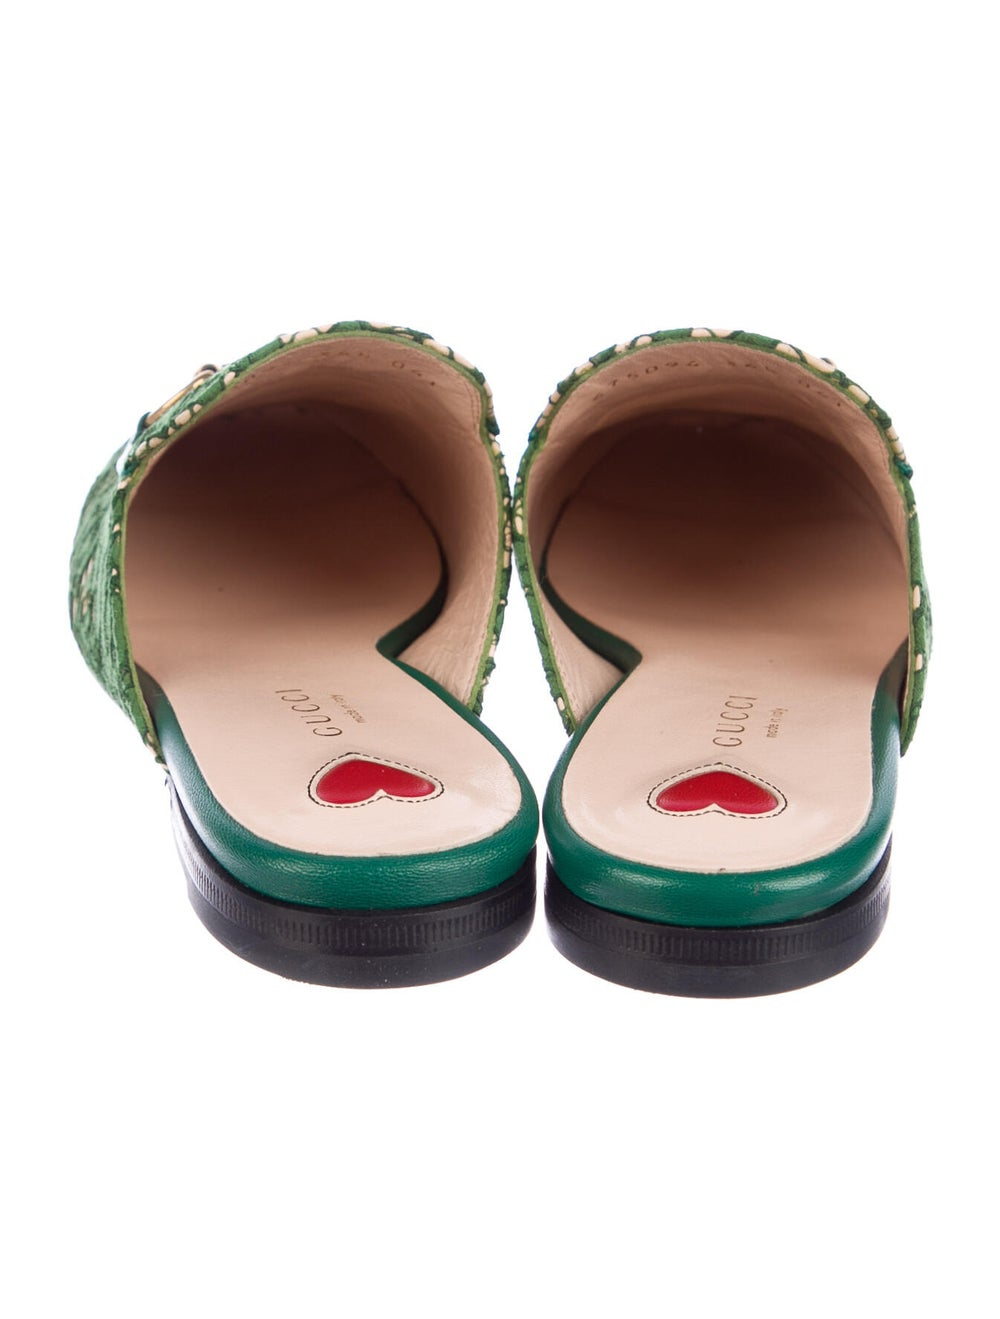 Gucci Princetown Horsebit Accent Mules Green - image 4